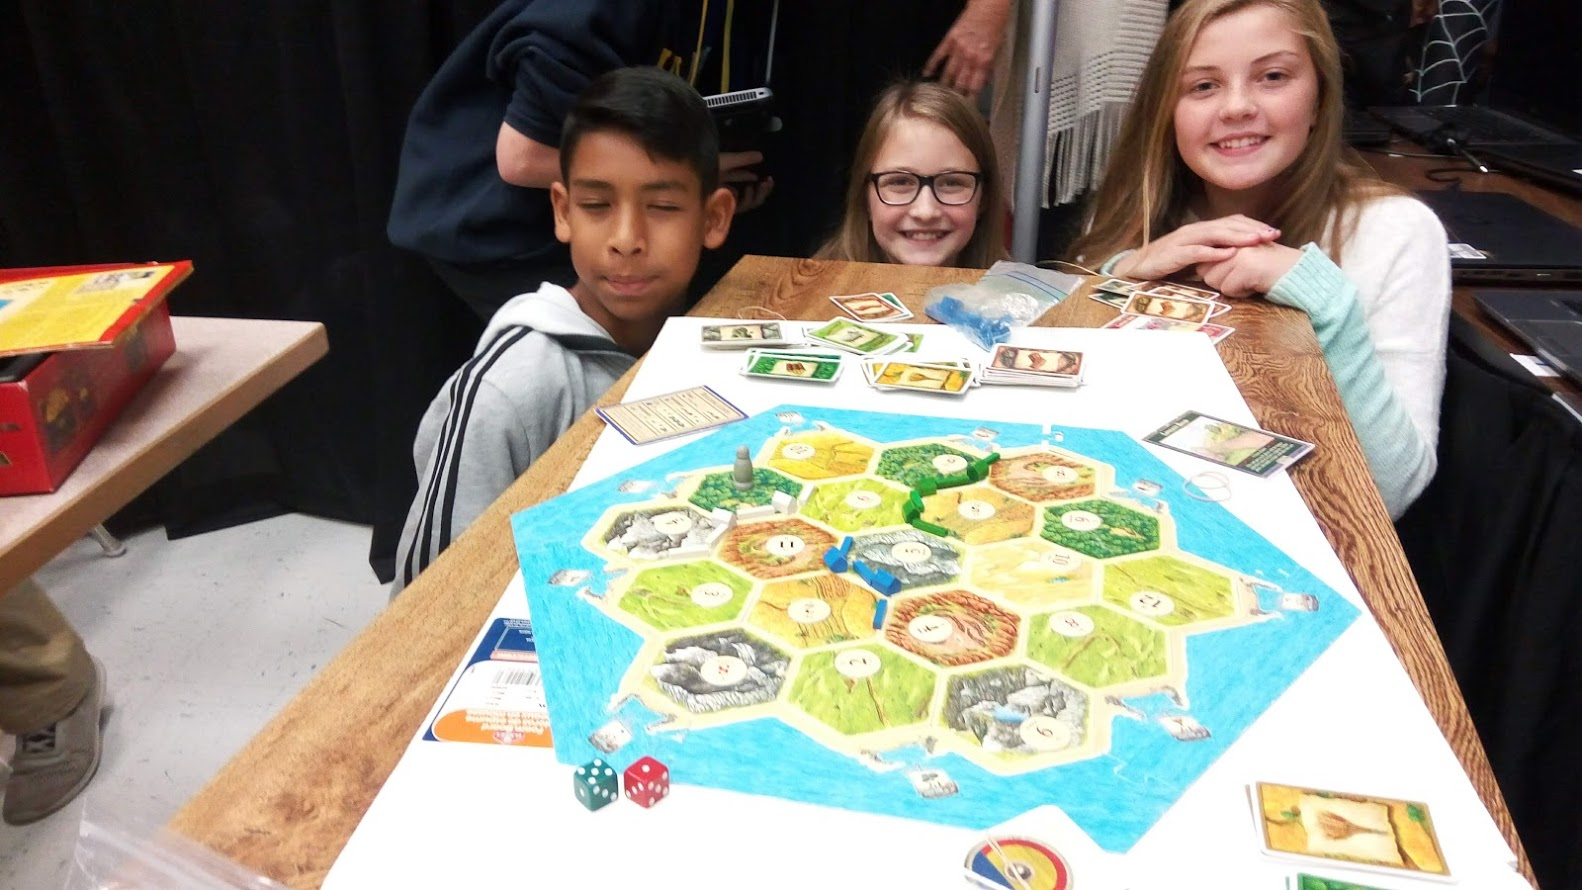 6th graders playing Settlers of Catan